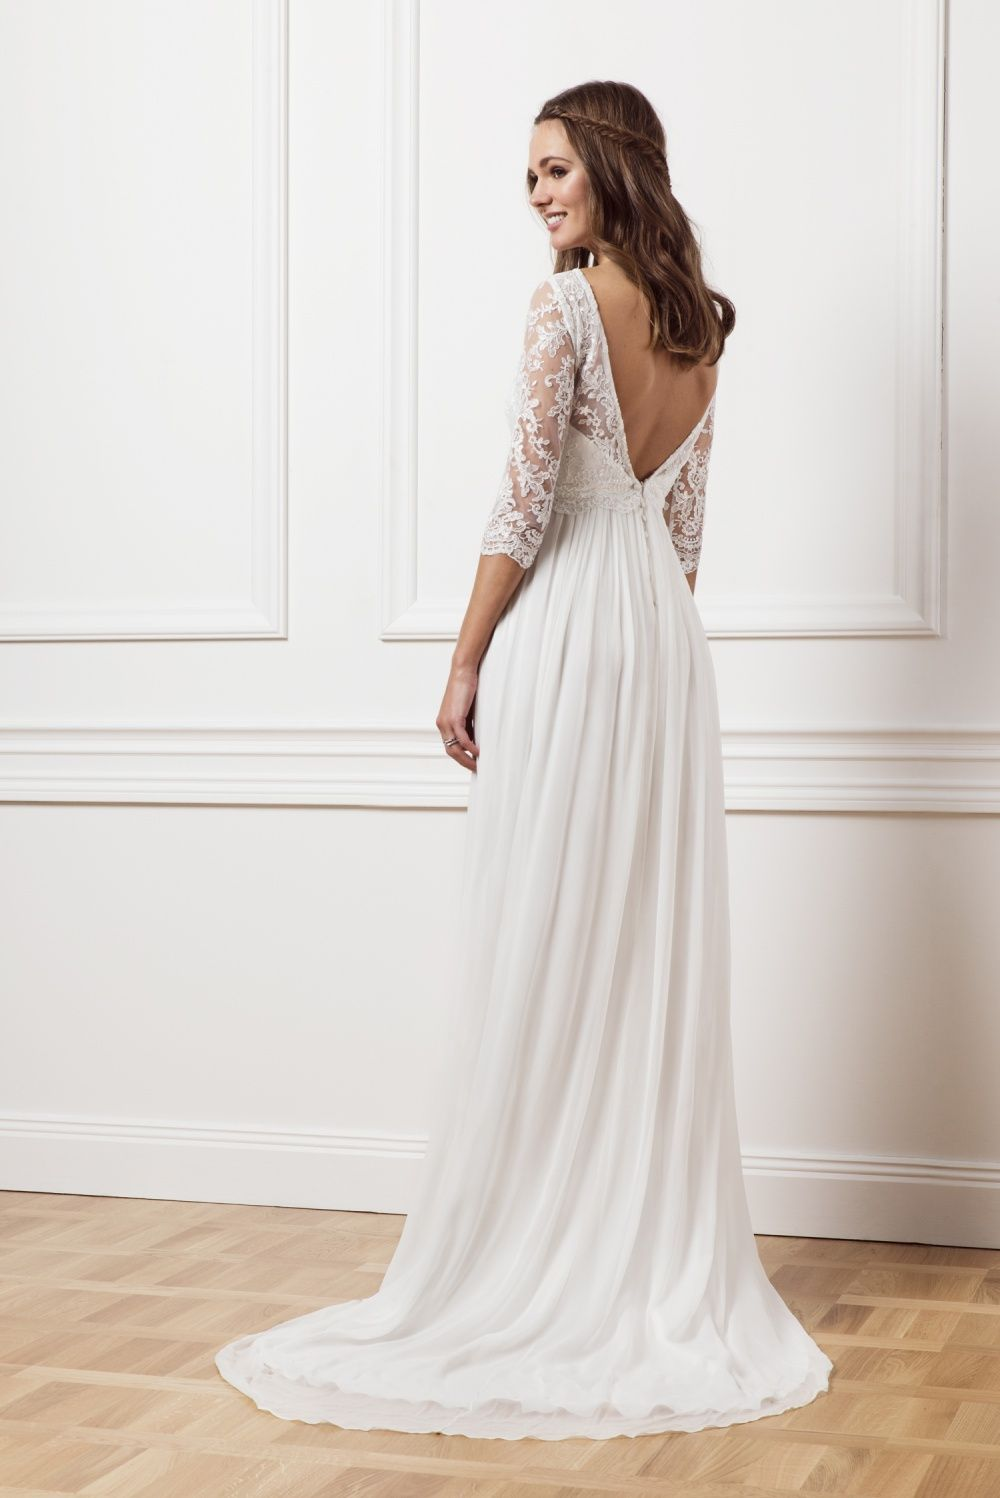 Melia Lavender lace by Malina about 1000 Euro | Wedding Dresses ...